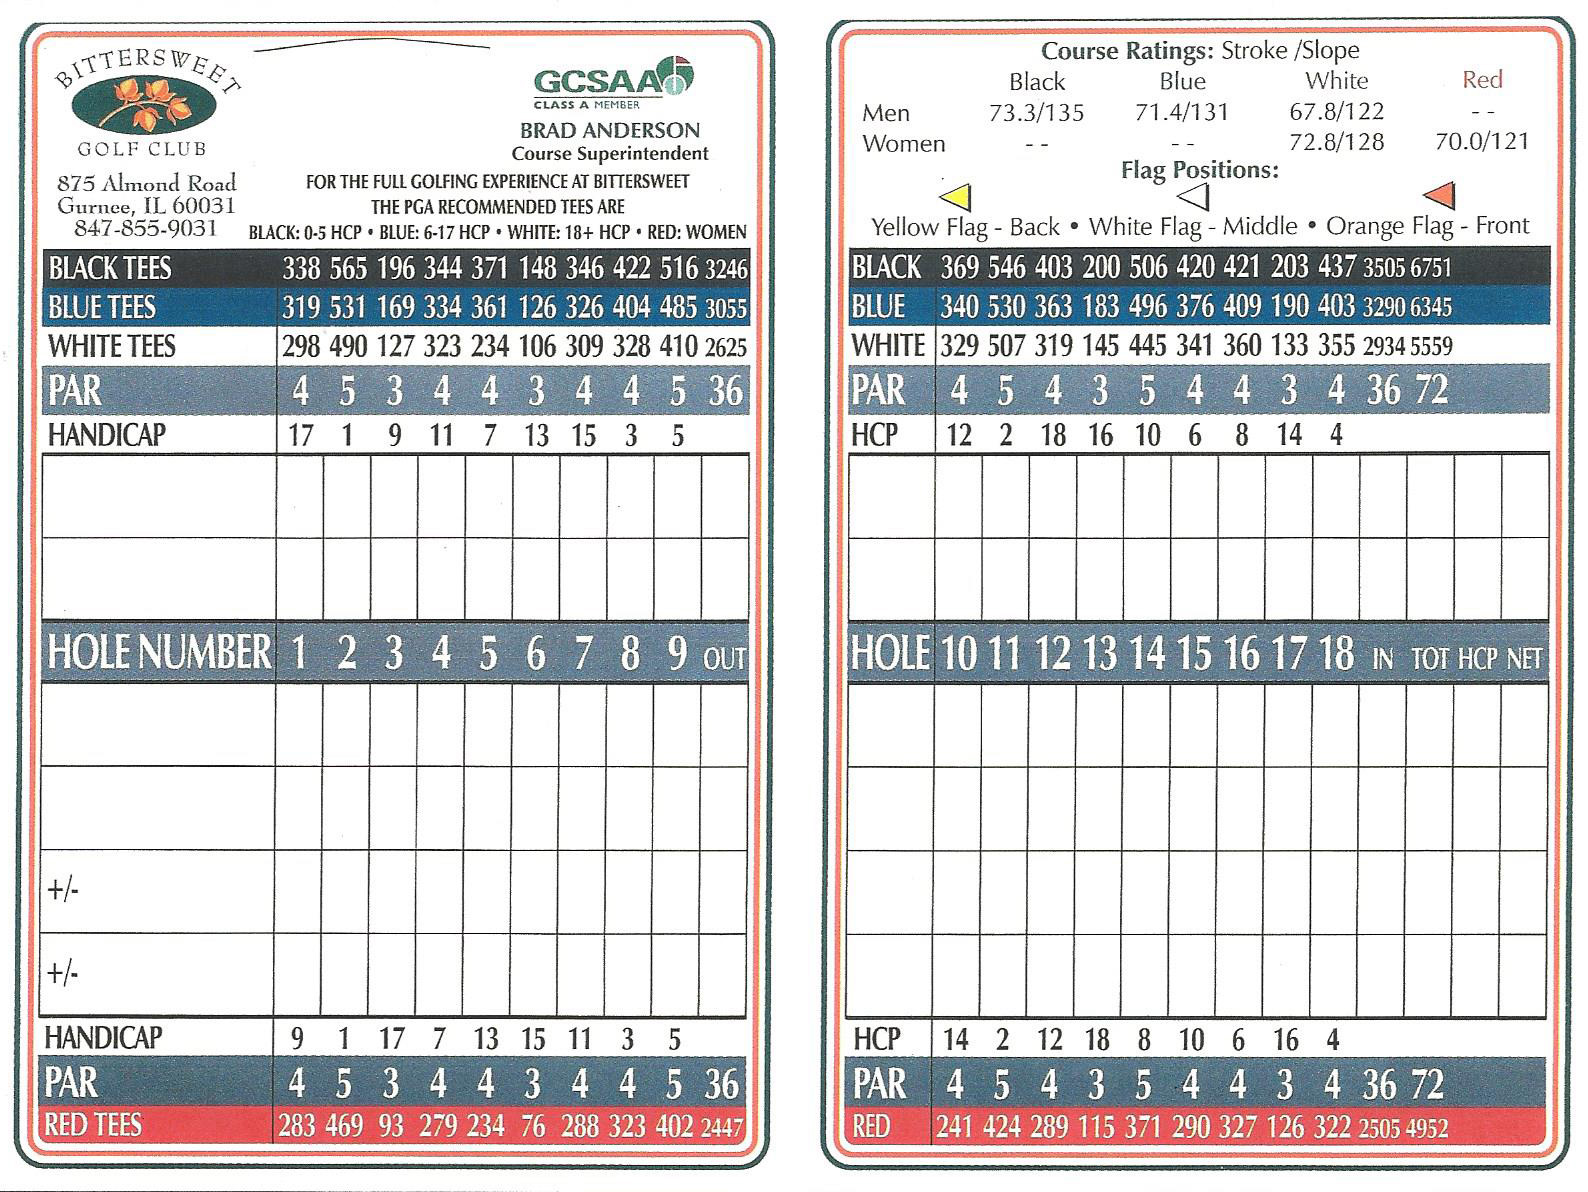 Bittersweet Golf Club scorecard